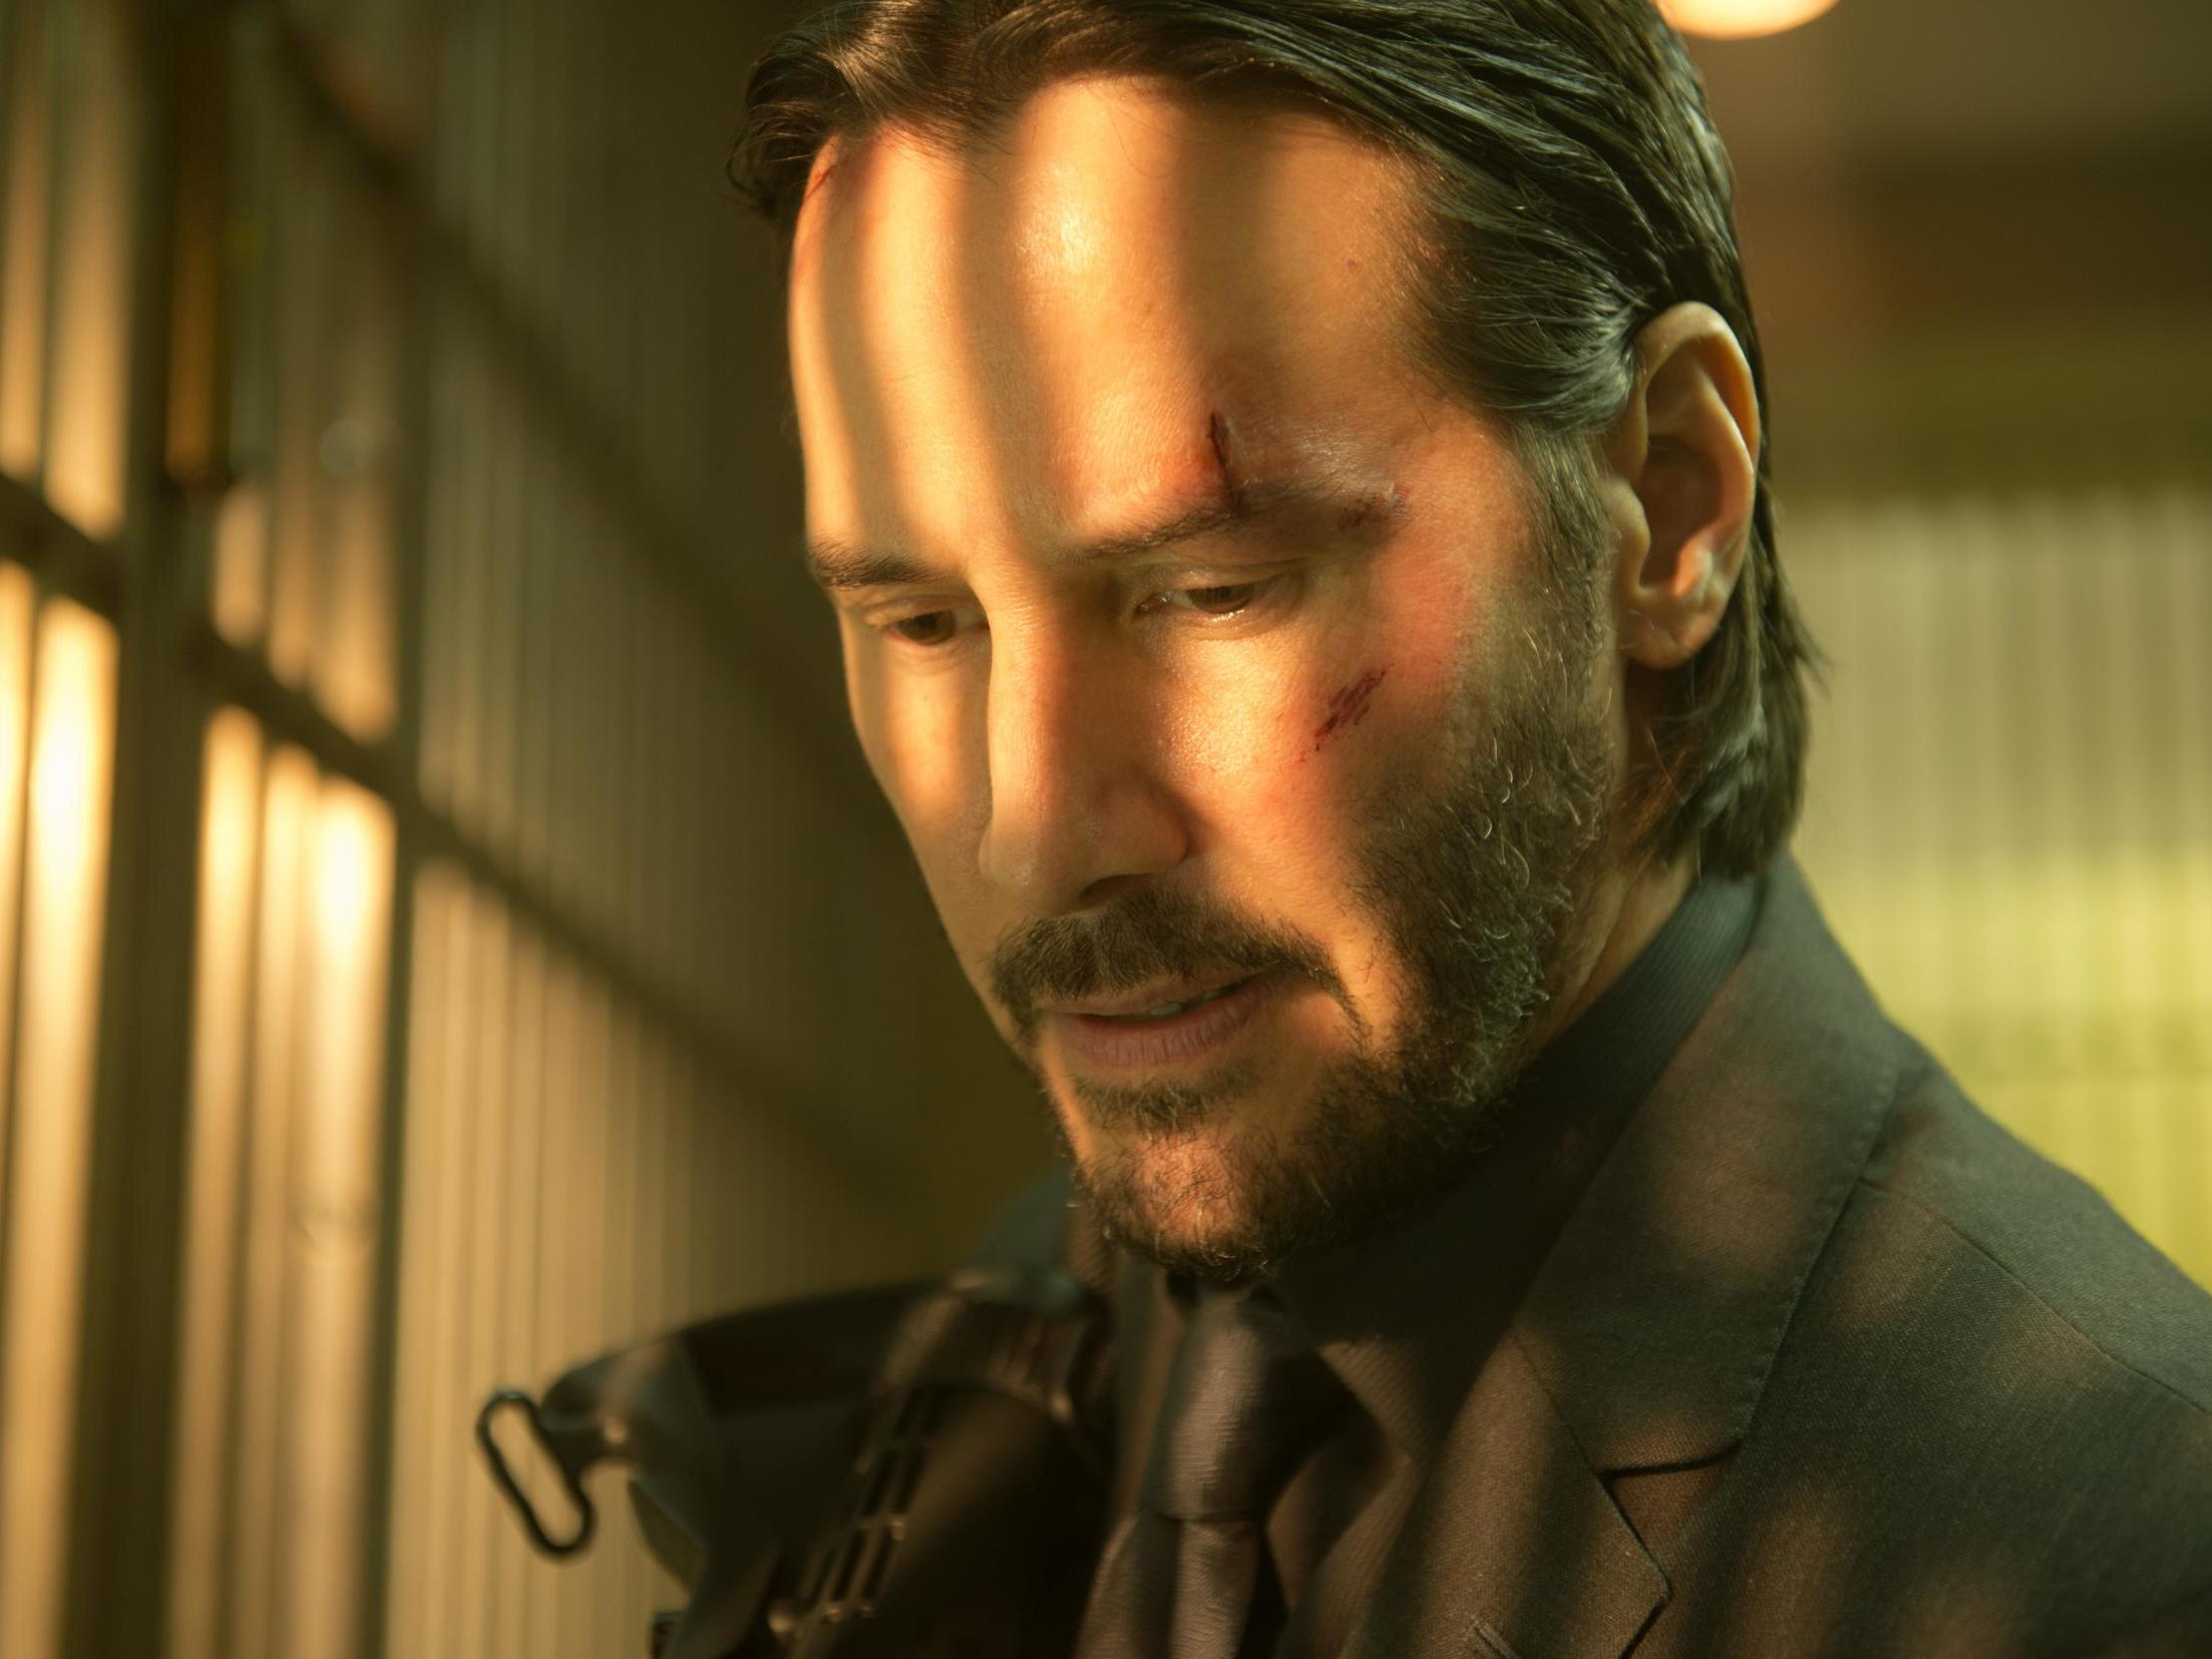 John Wick is only called John Wick because Keanu Reeves kept saying the wrong title